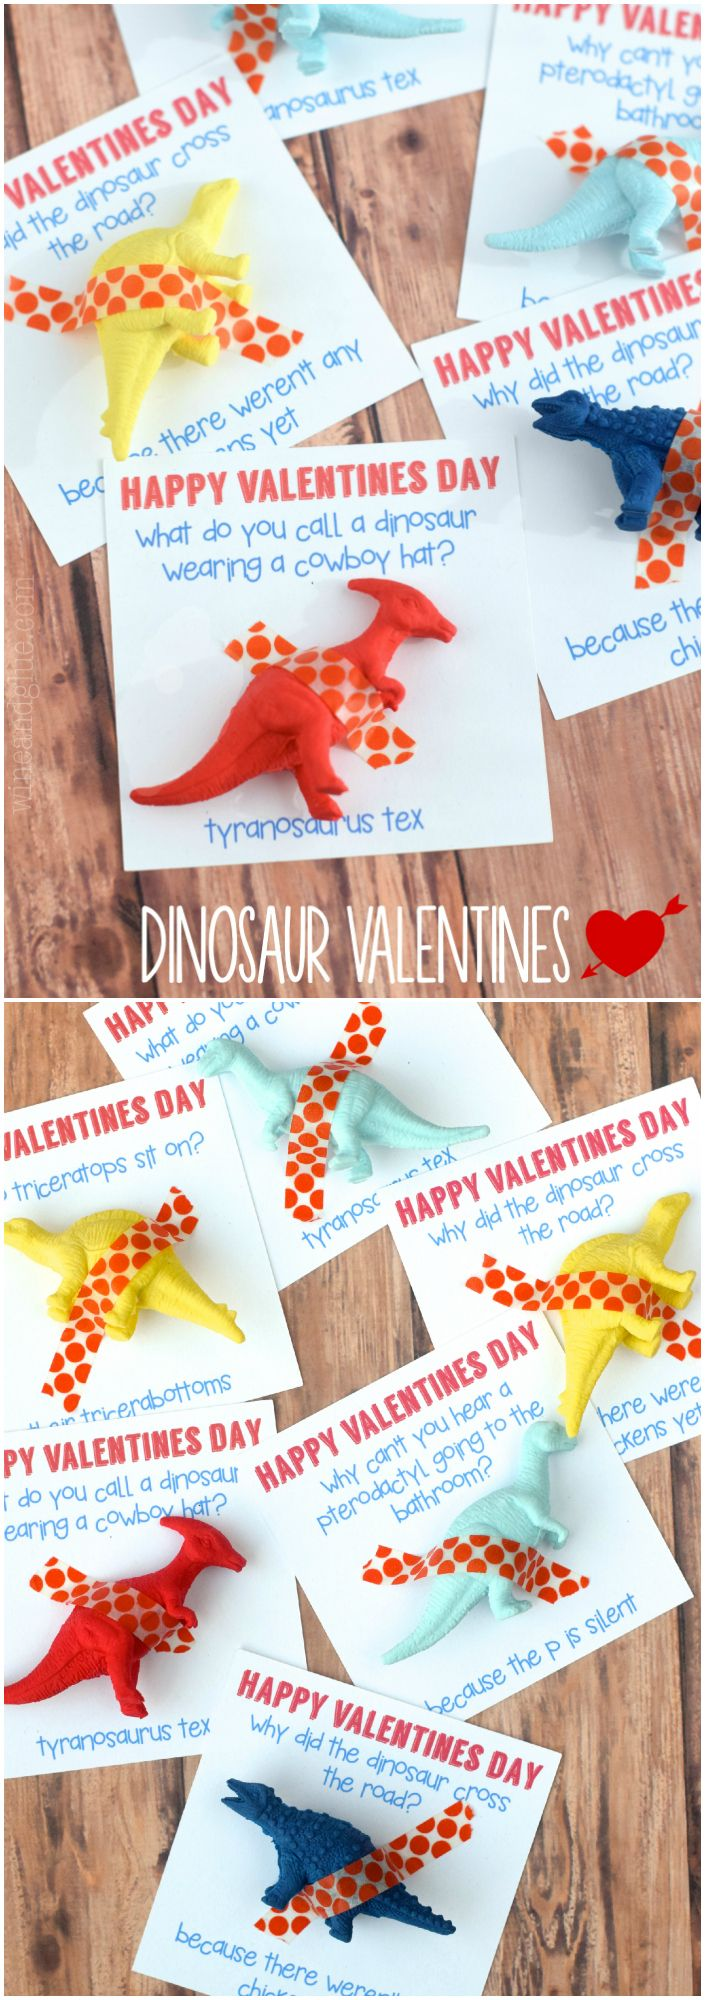 Dinosaur Valentine | wineandglue.com | A cute Dinosaur Valentine that comes complete with a funny joke! What more could you ask for?